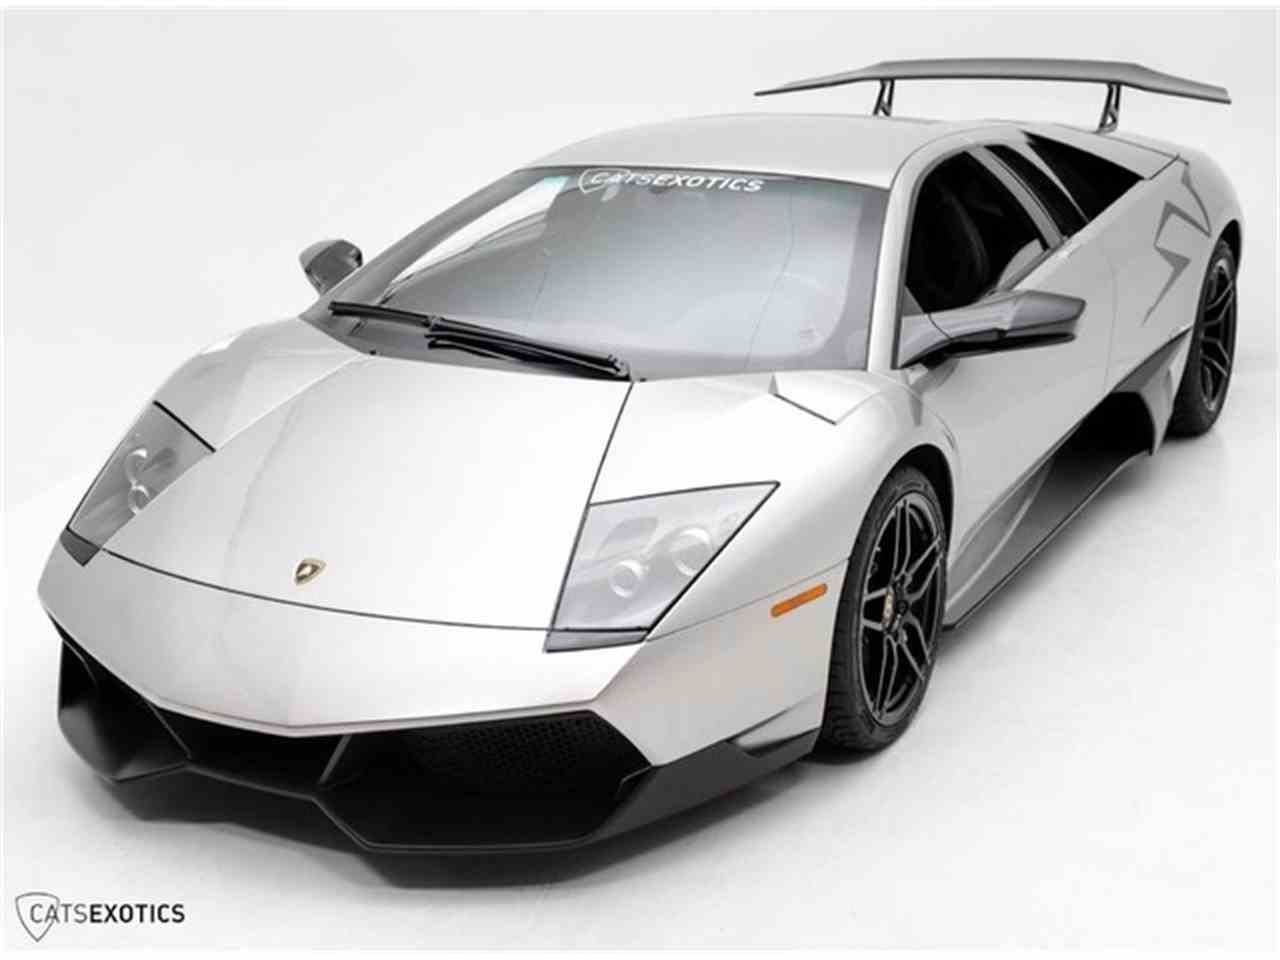 2010 Lamborghini Murcielago for Sale - CC-906144